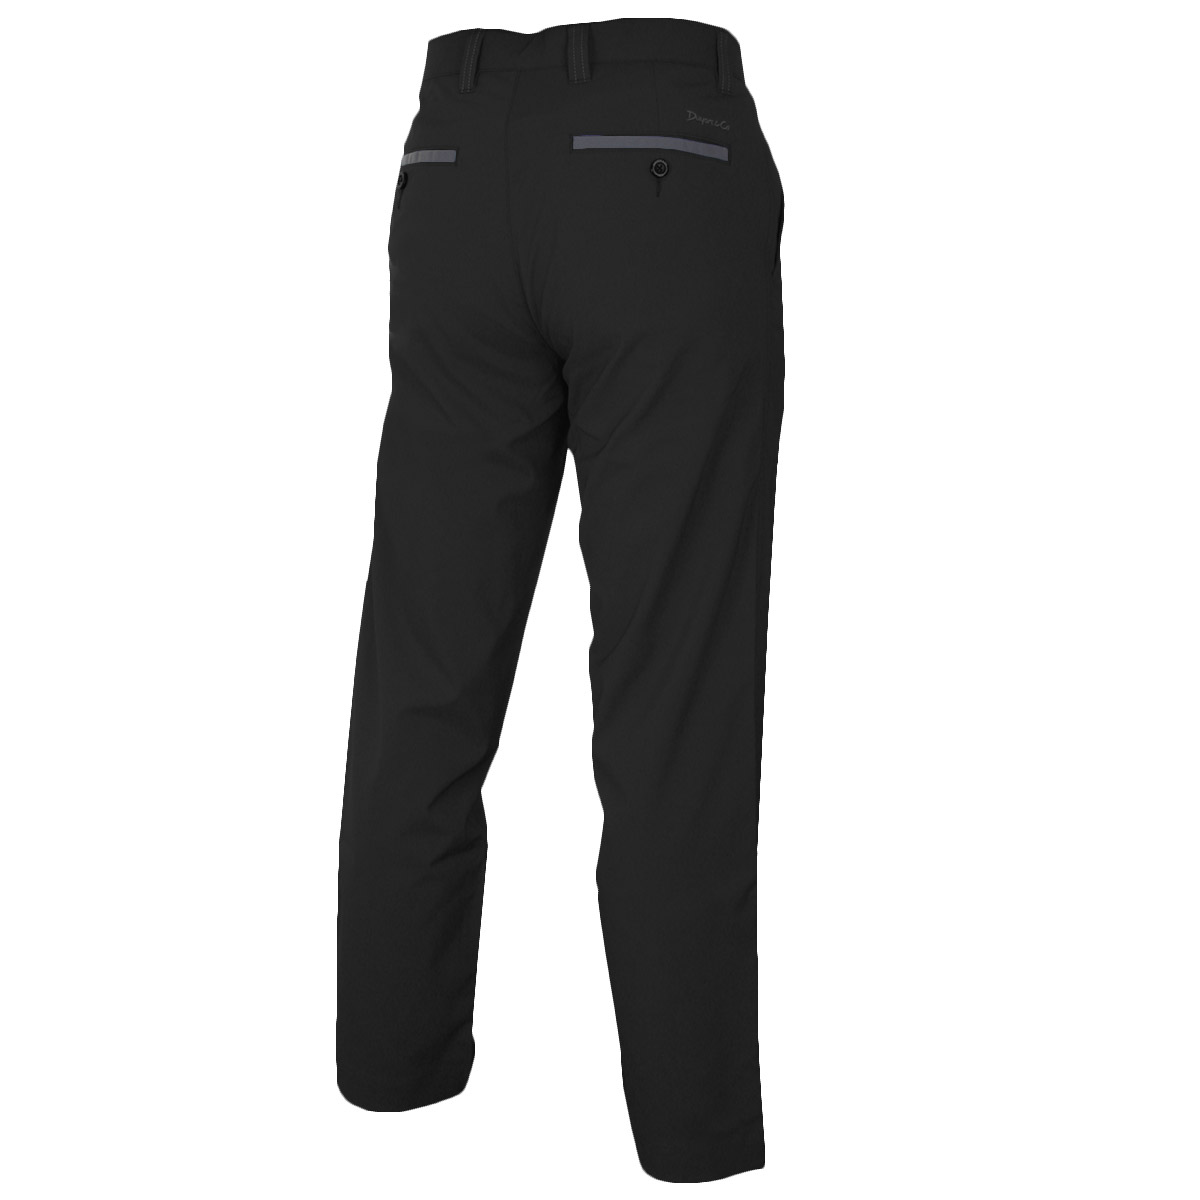 Dwyers-amp-Co-Mens-Matchplay-Stretch-Lightweight-Golf-Trousers-38-OFF-RRP thumbnail 7